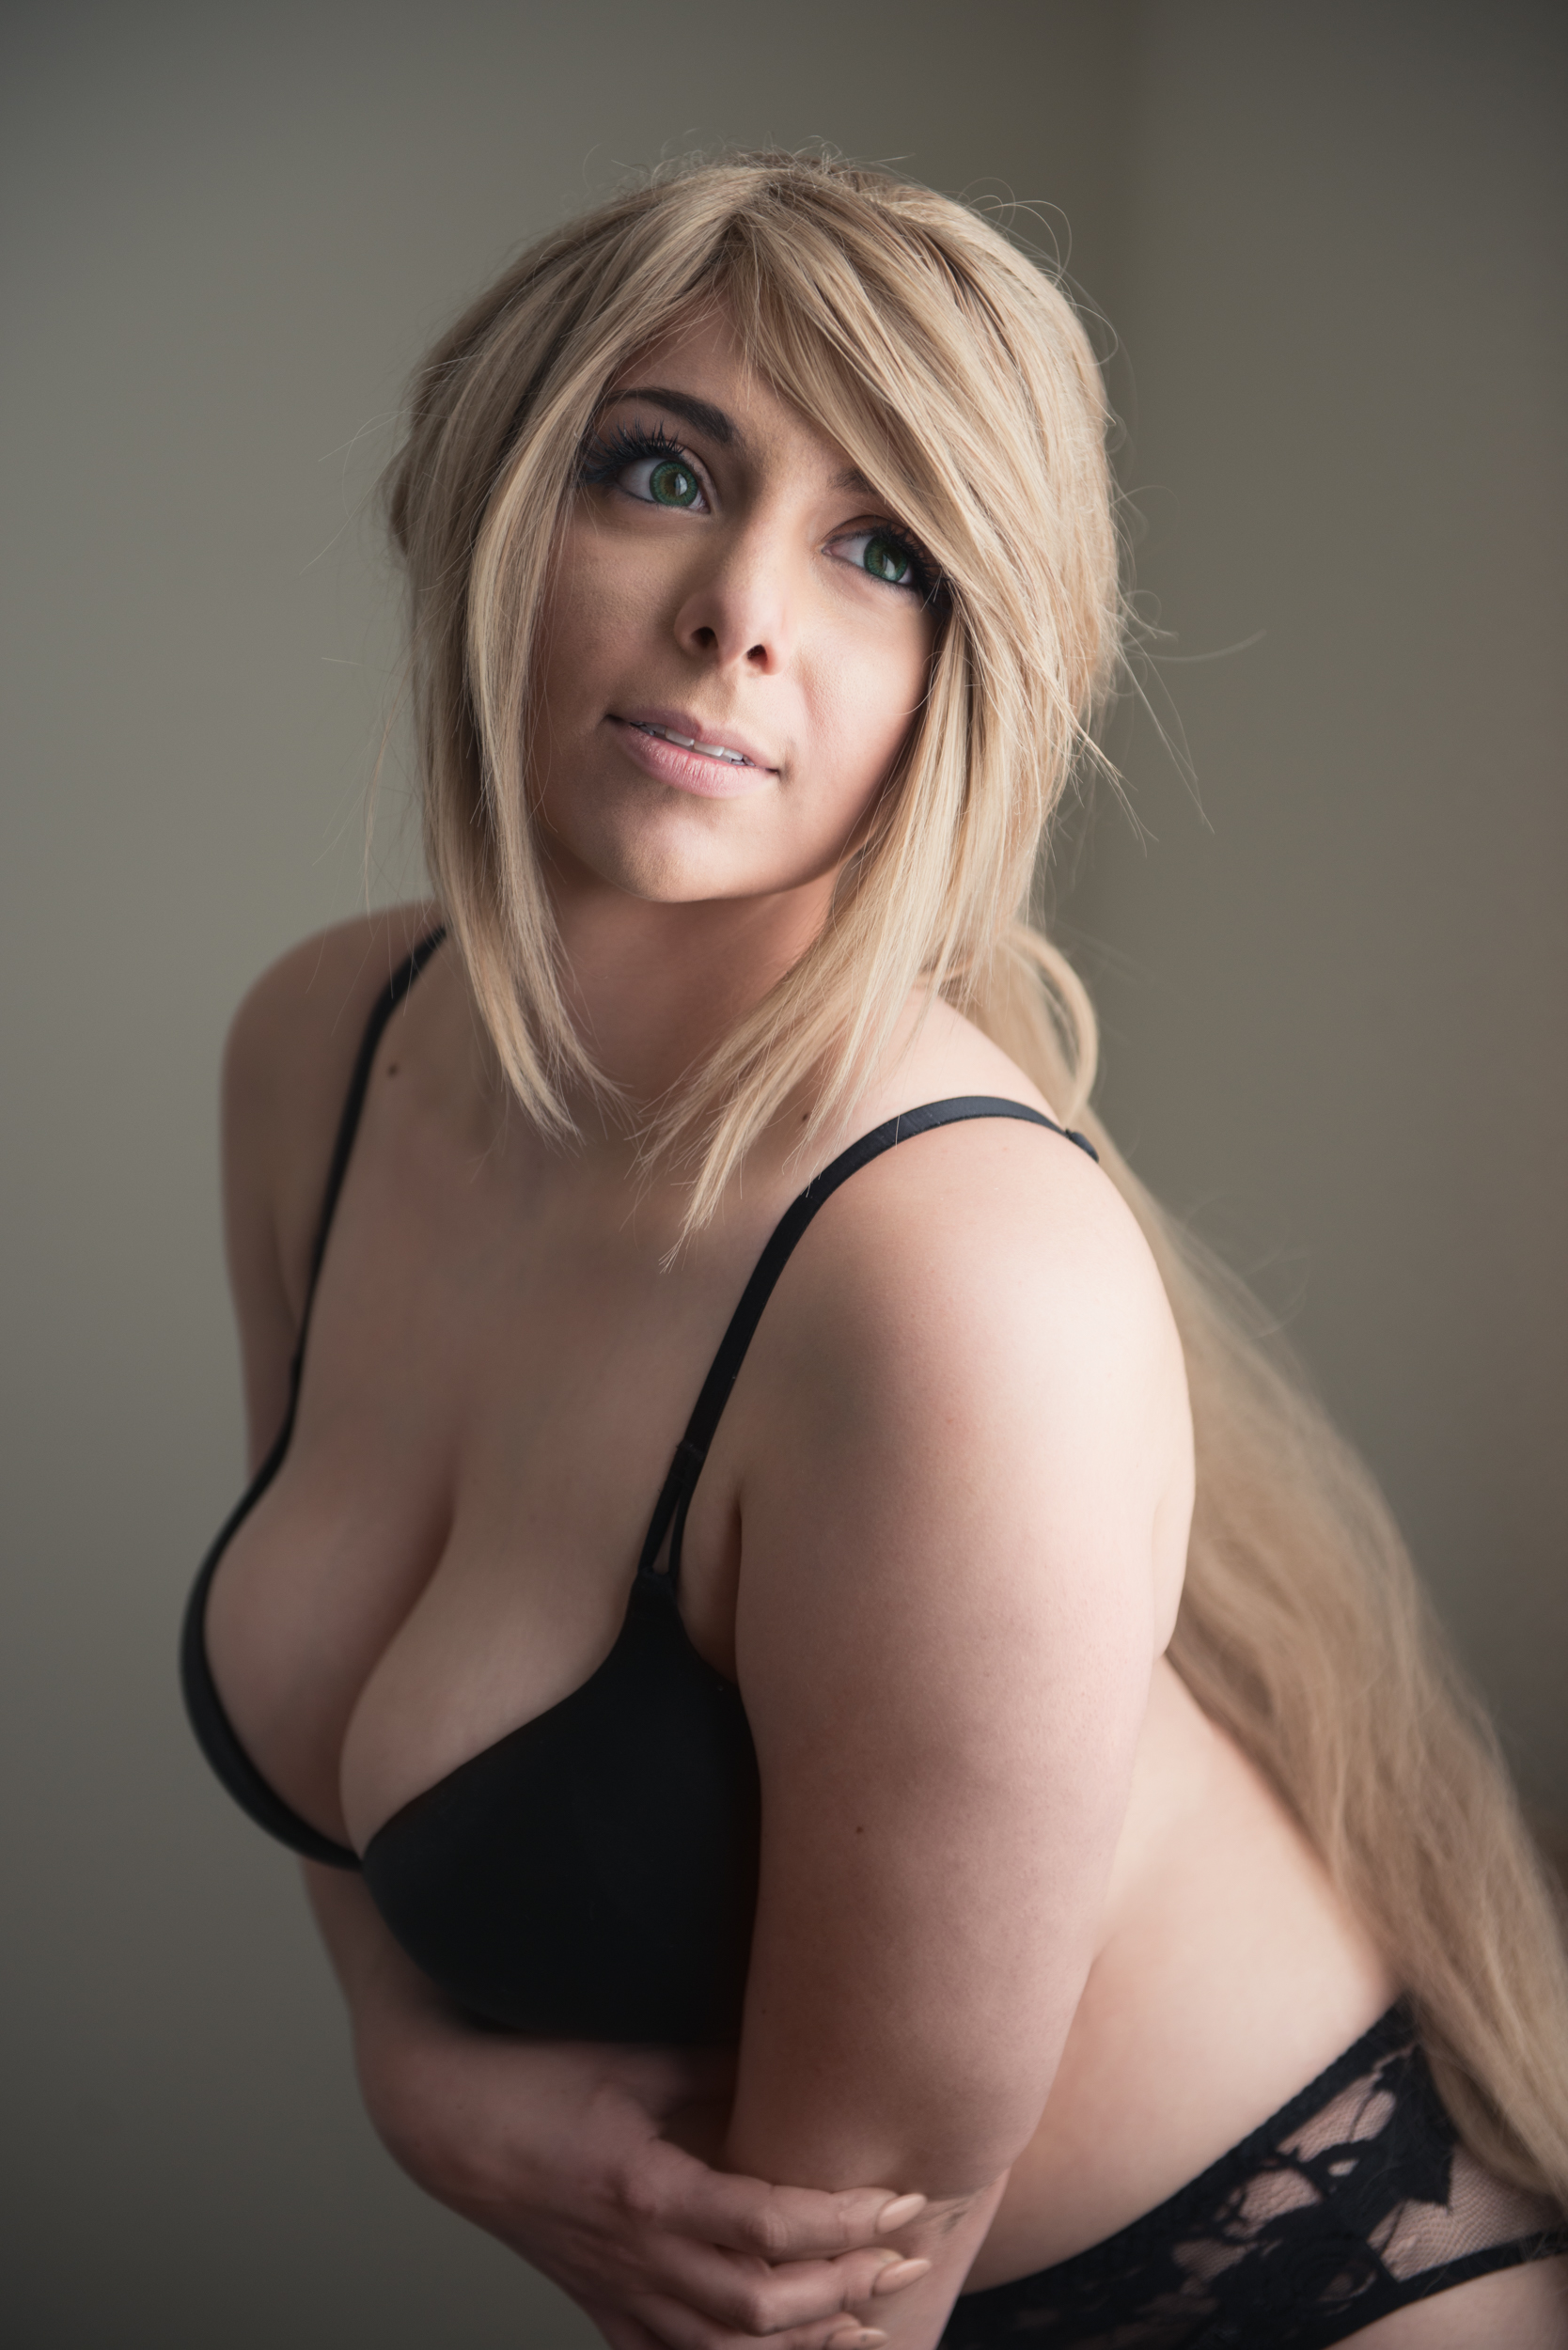 Momokun / Mariahmallad Nude and Lingerie Pictures (23 pics